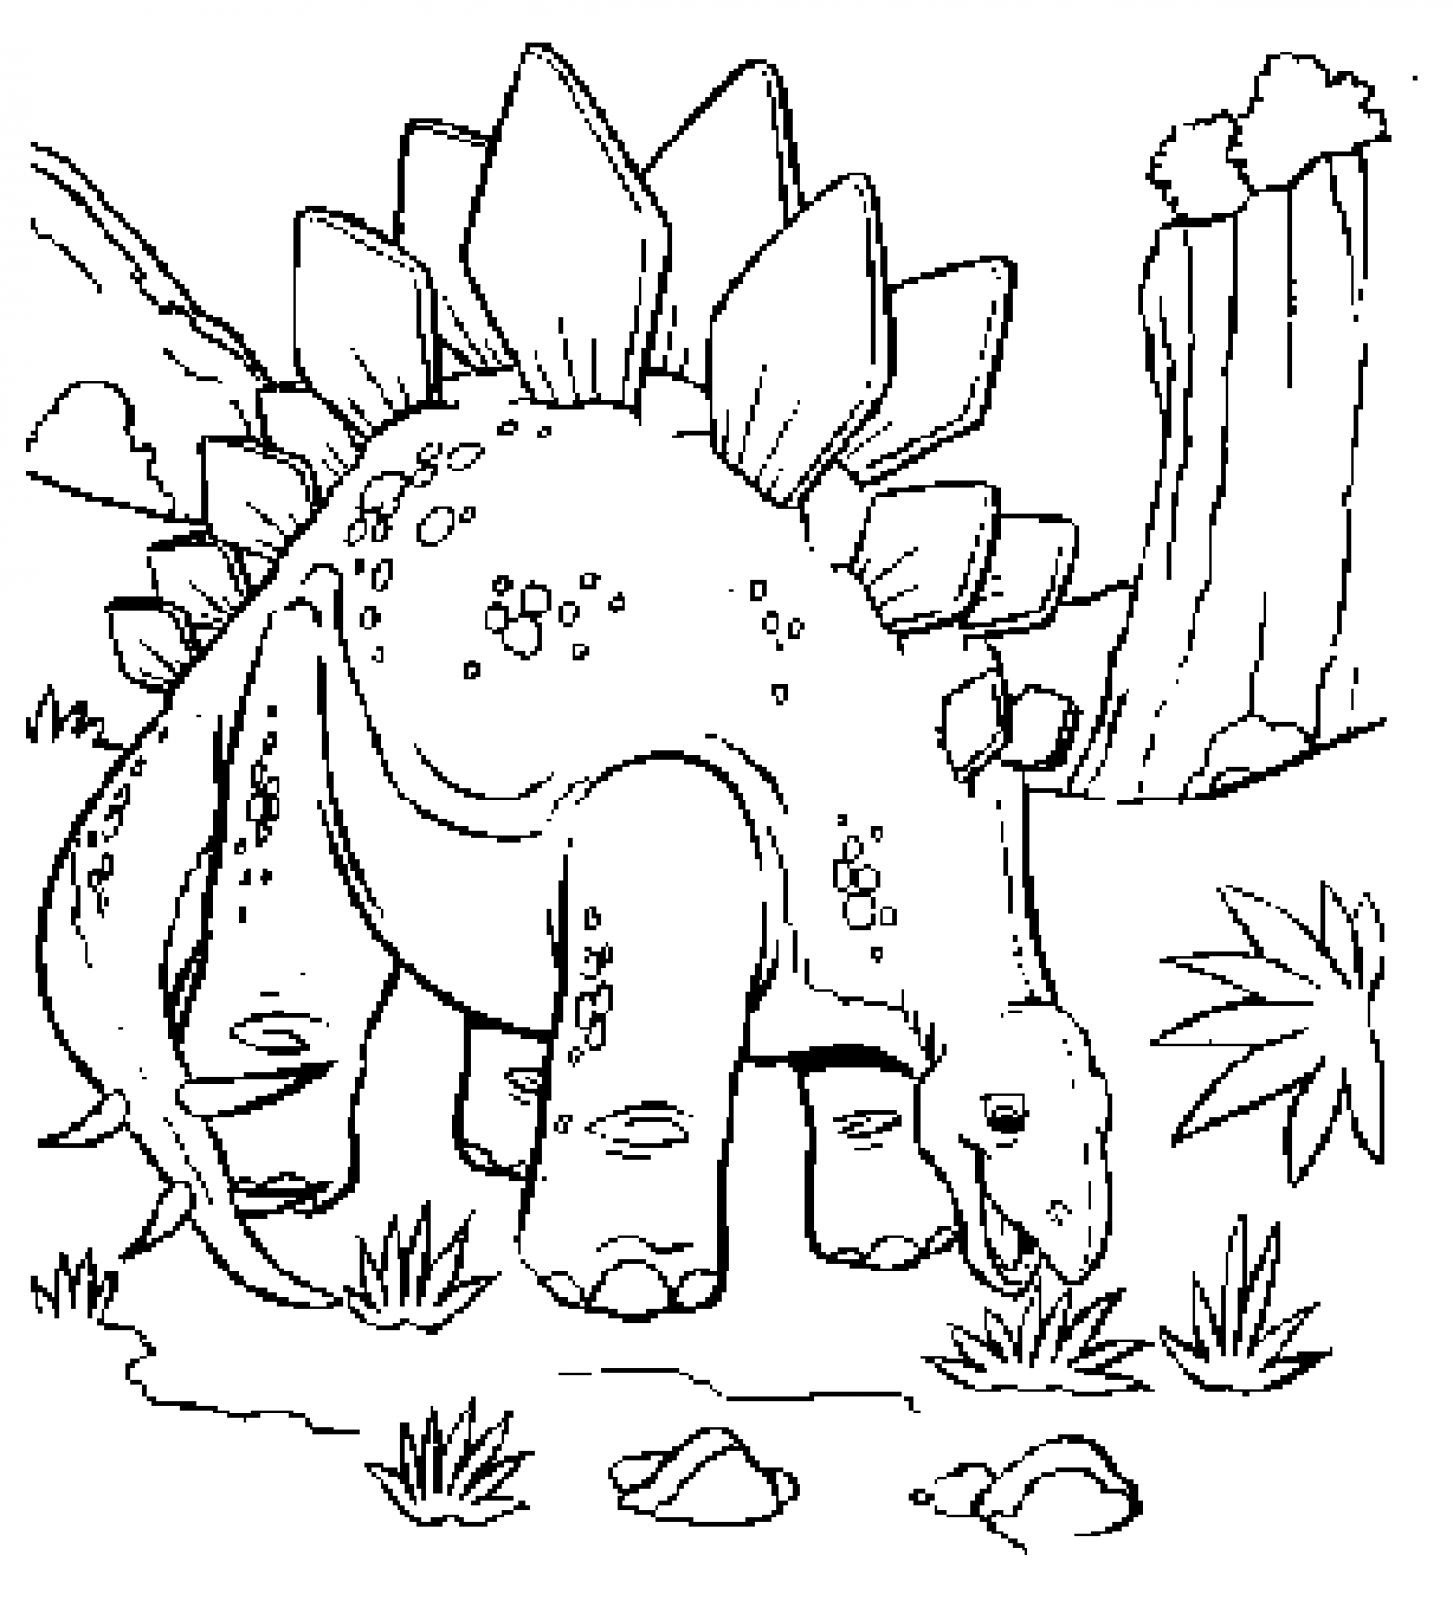 dinosaur-coloring-pages-with-names-pdf-of-dinosaur-coloring-pages-with-names-pdf Dinosaur Coloring Pages with Names Pdf Dinosaurs